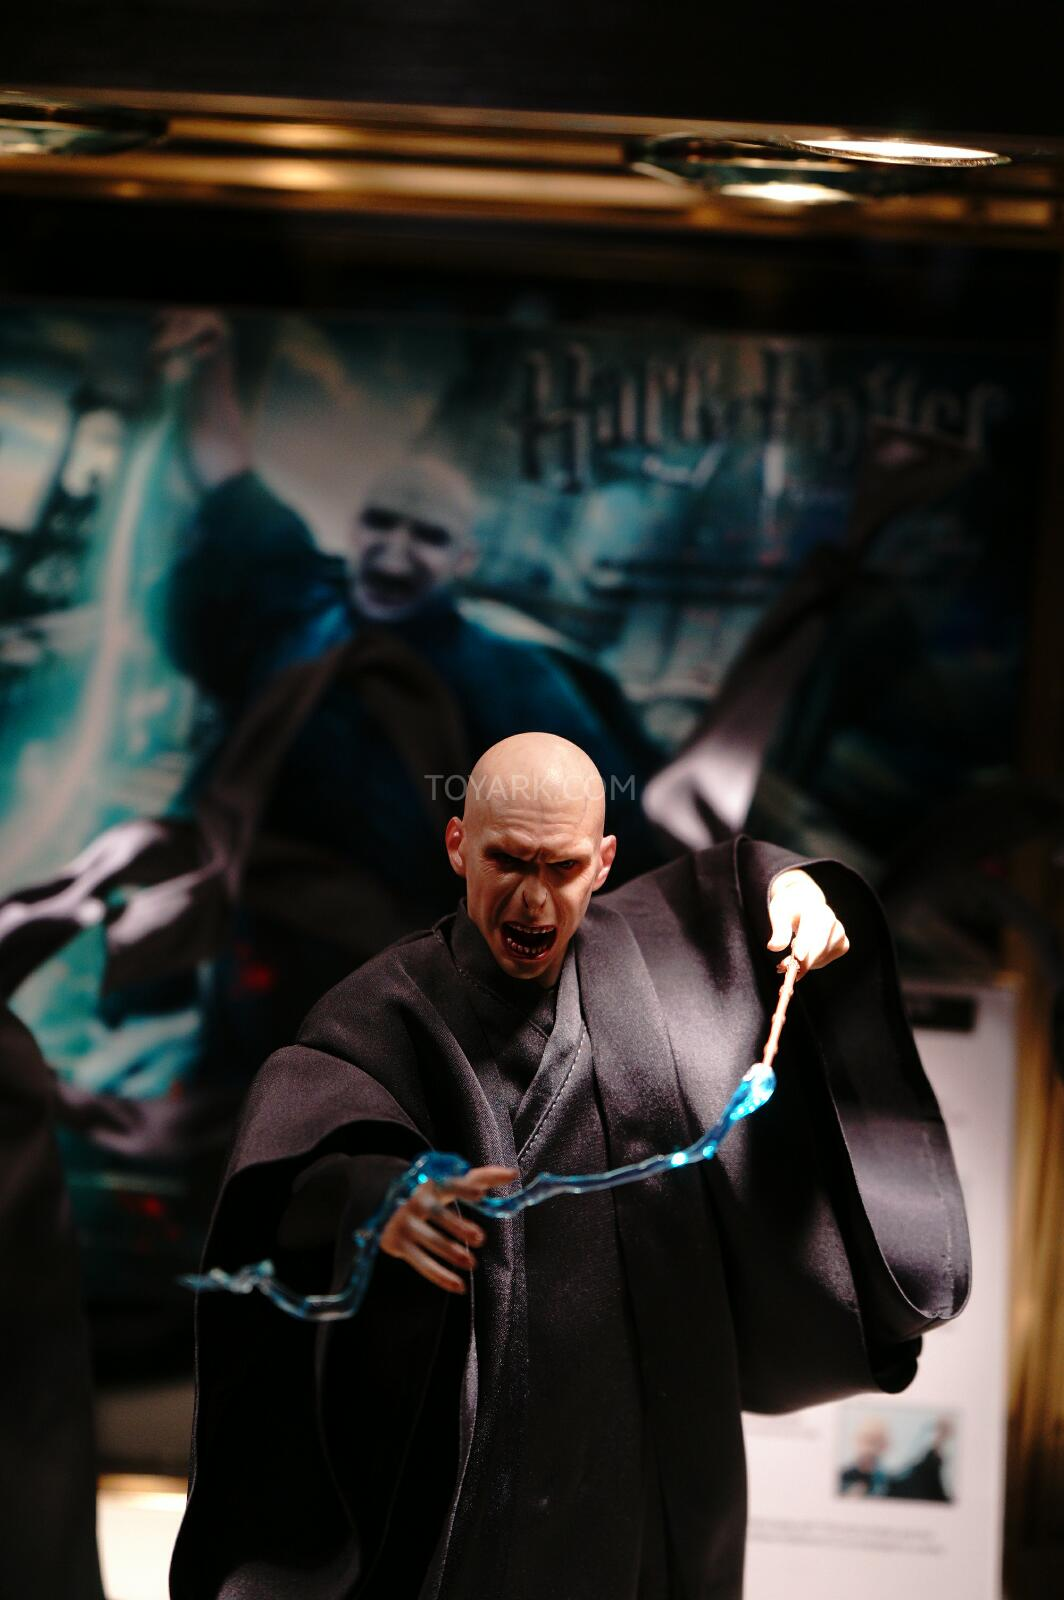 [Star Ace Toys] Harry Potter and the Dealthy Hallows: Lord Voldemort NYCC-2014-Star-Ace-004